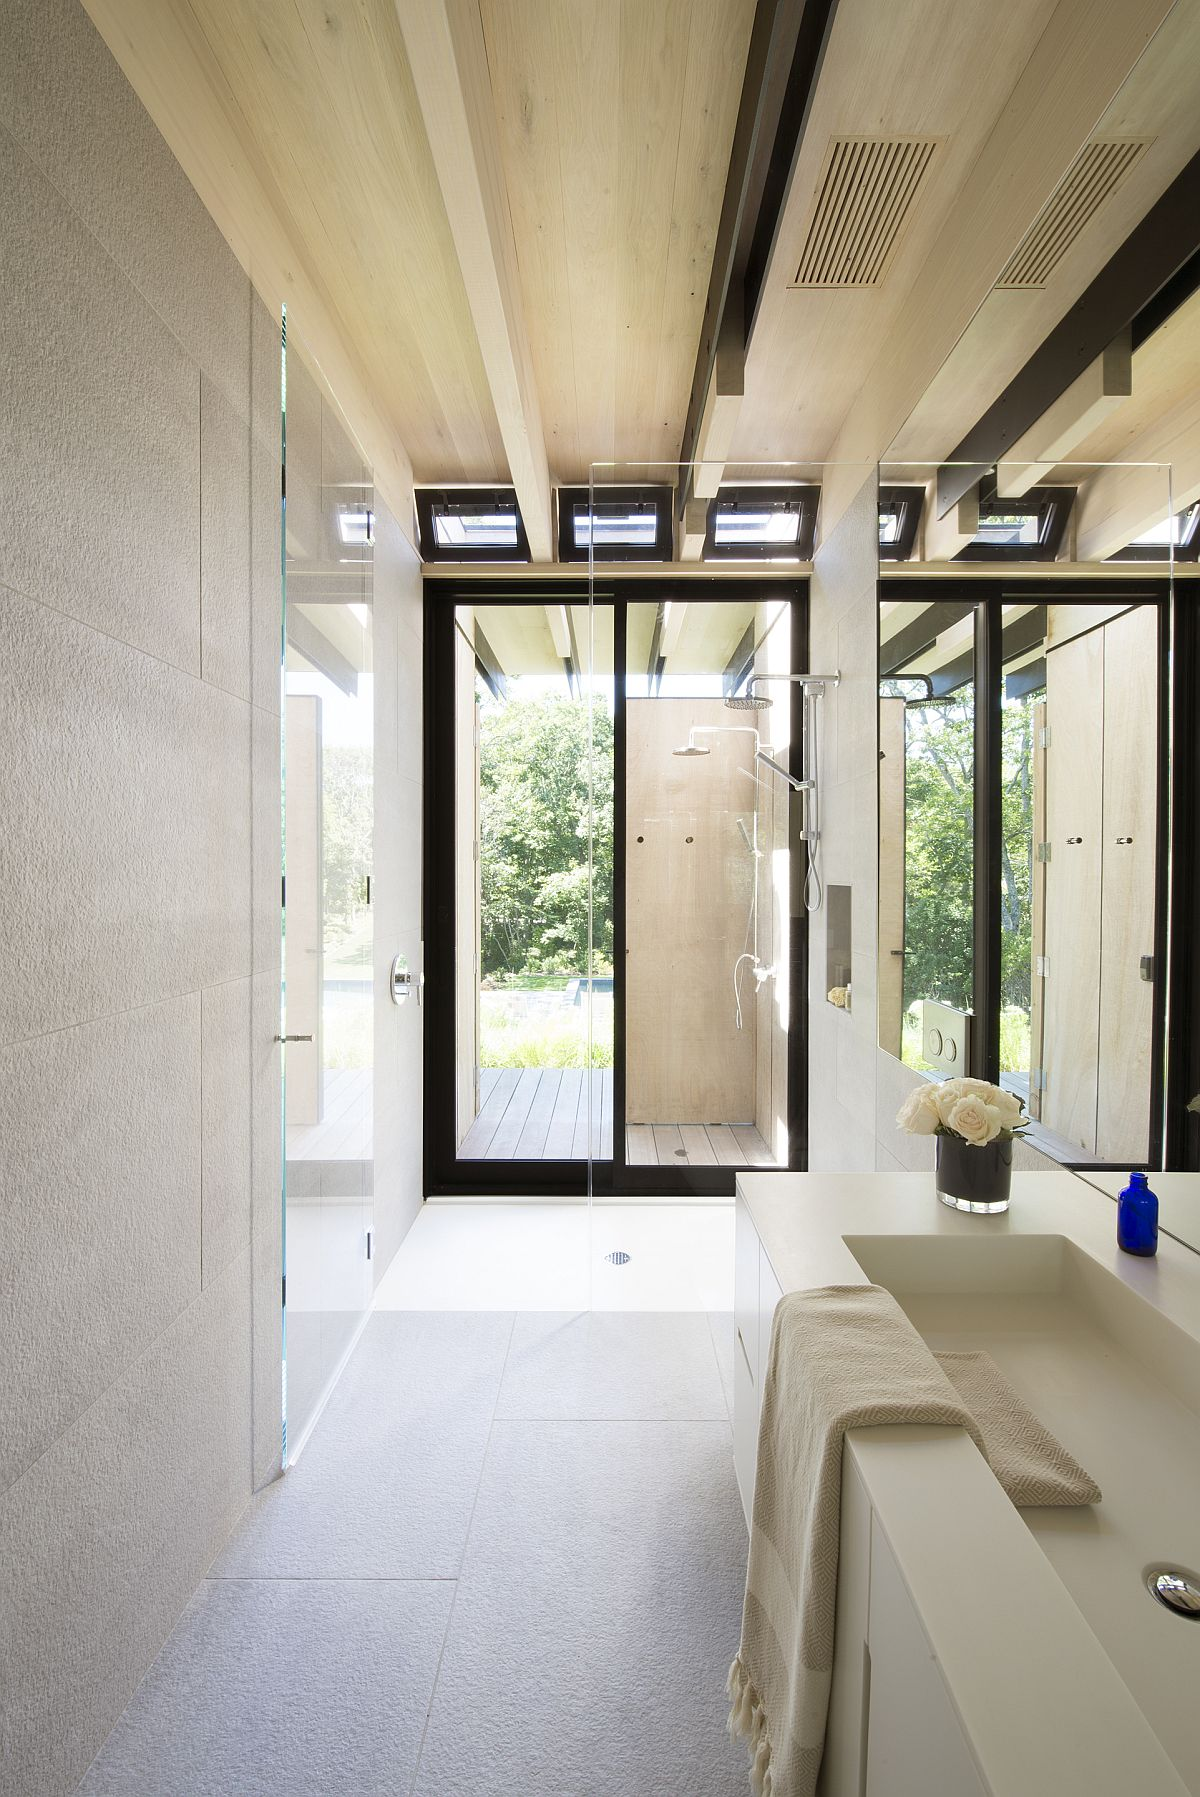 Contemporary bathroom in white with large windows and black window frames